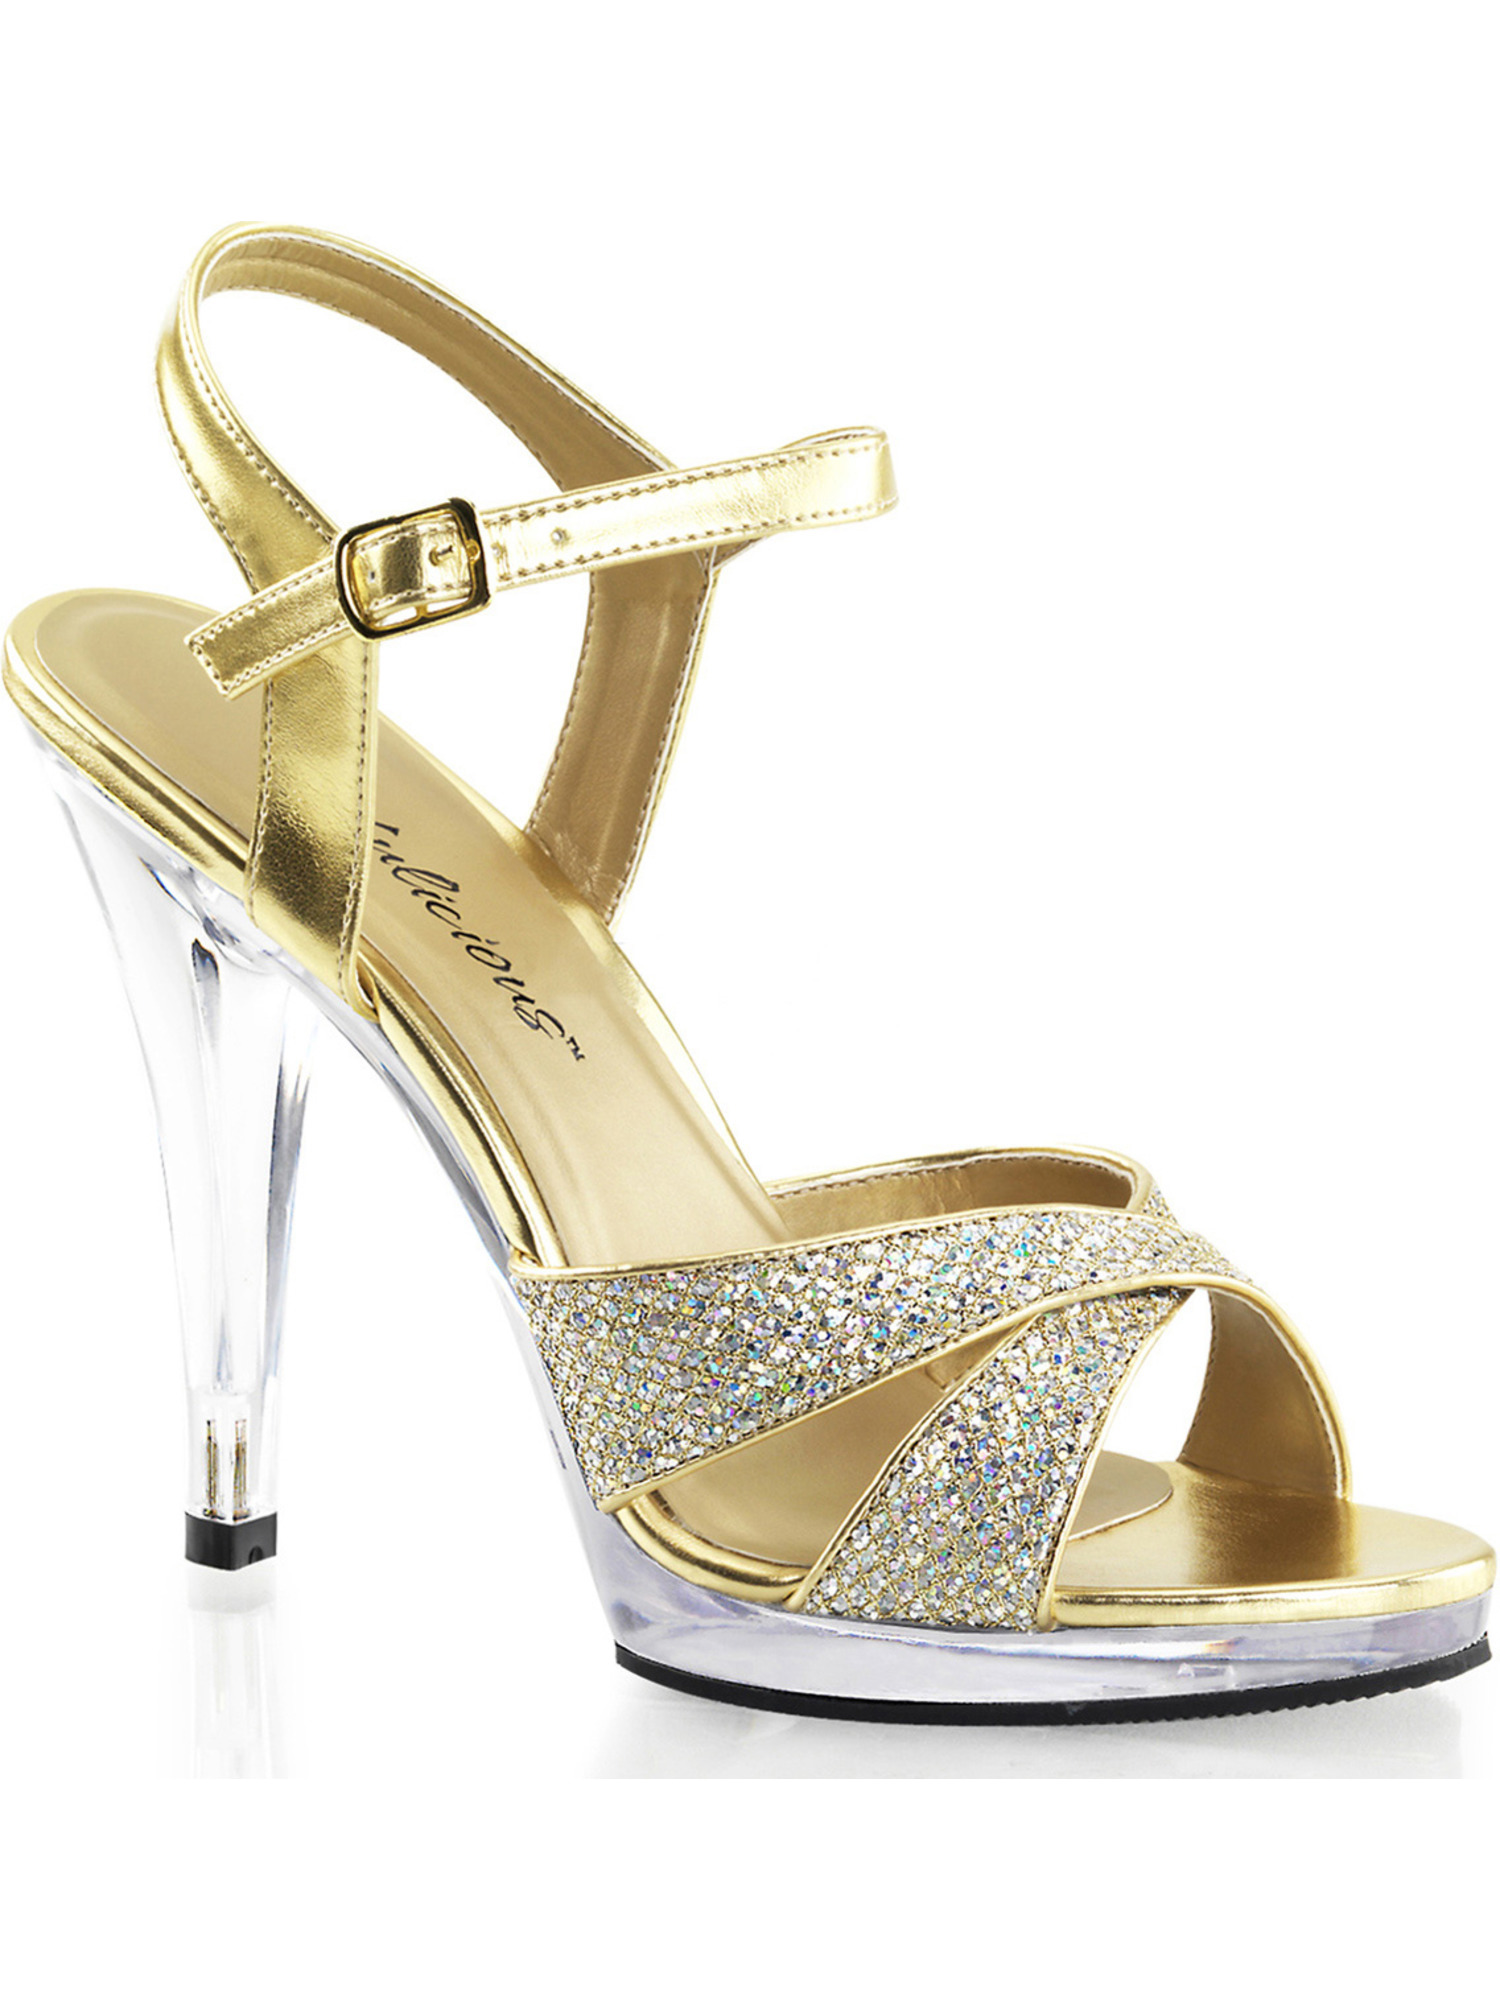 Womens Sparkling Gold Glitter Sandals 4.5 Inch High Heel Strappy Dress Shoes